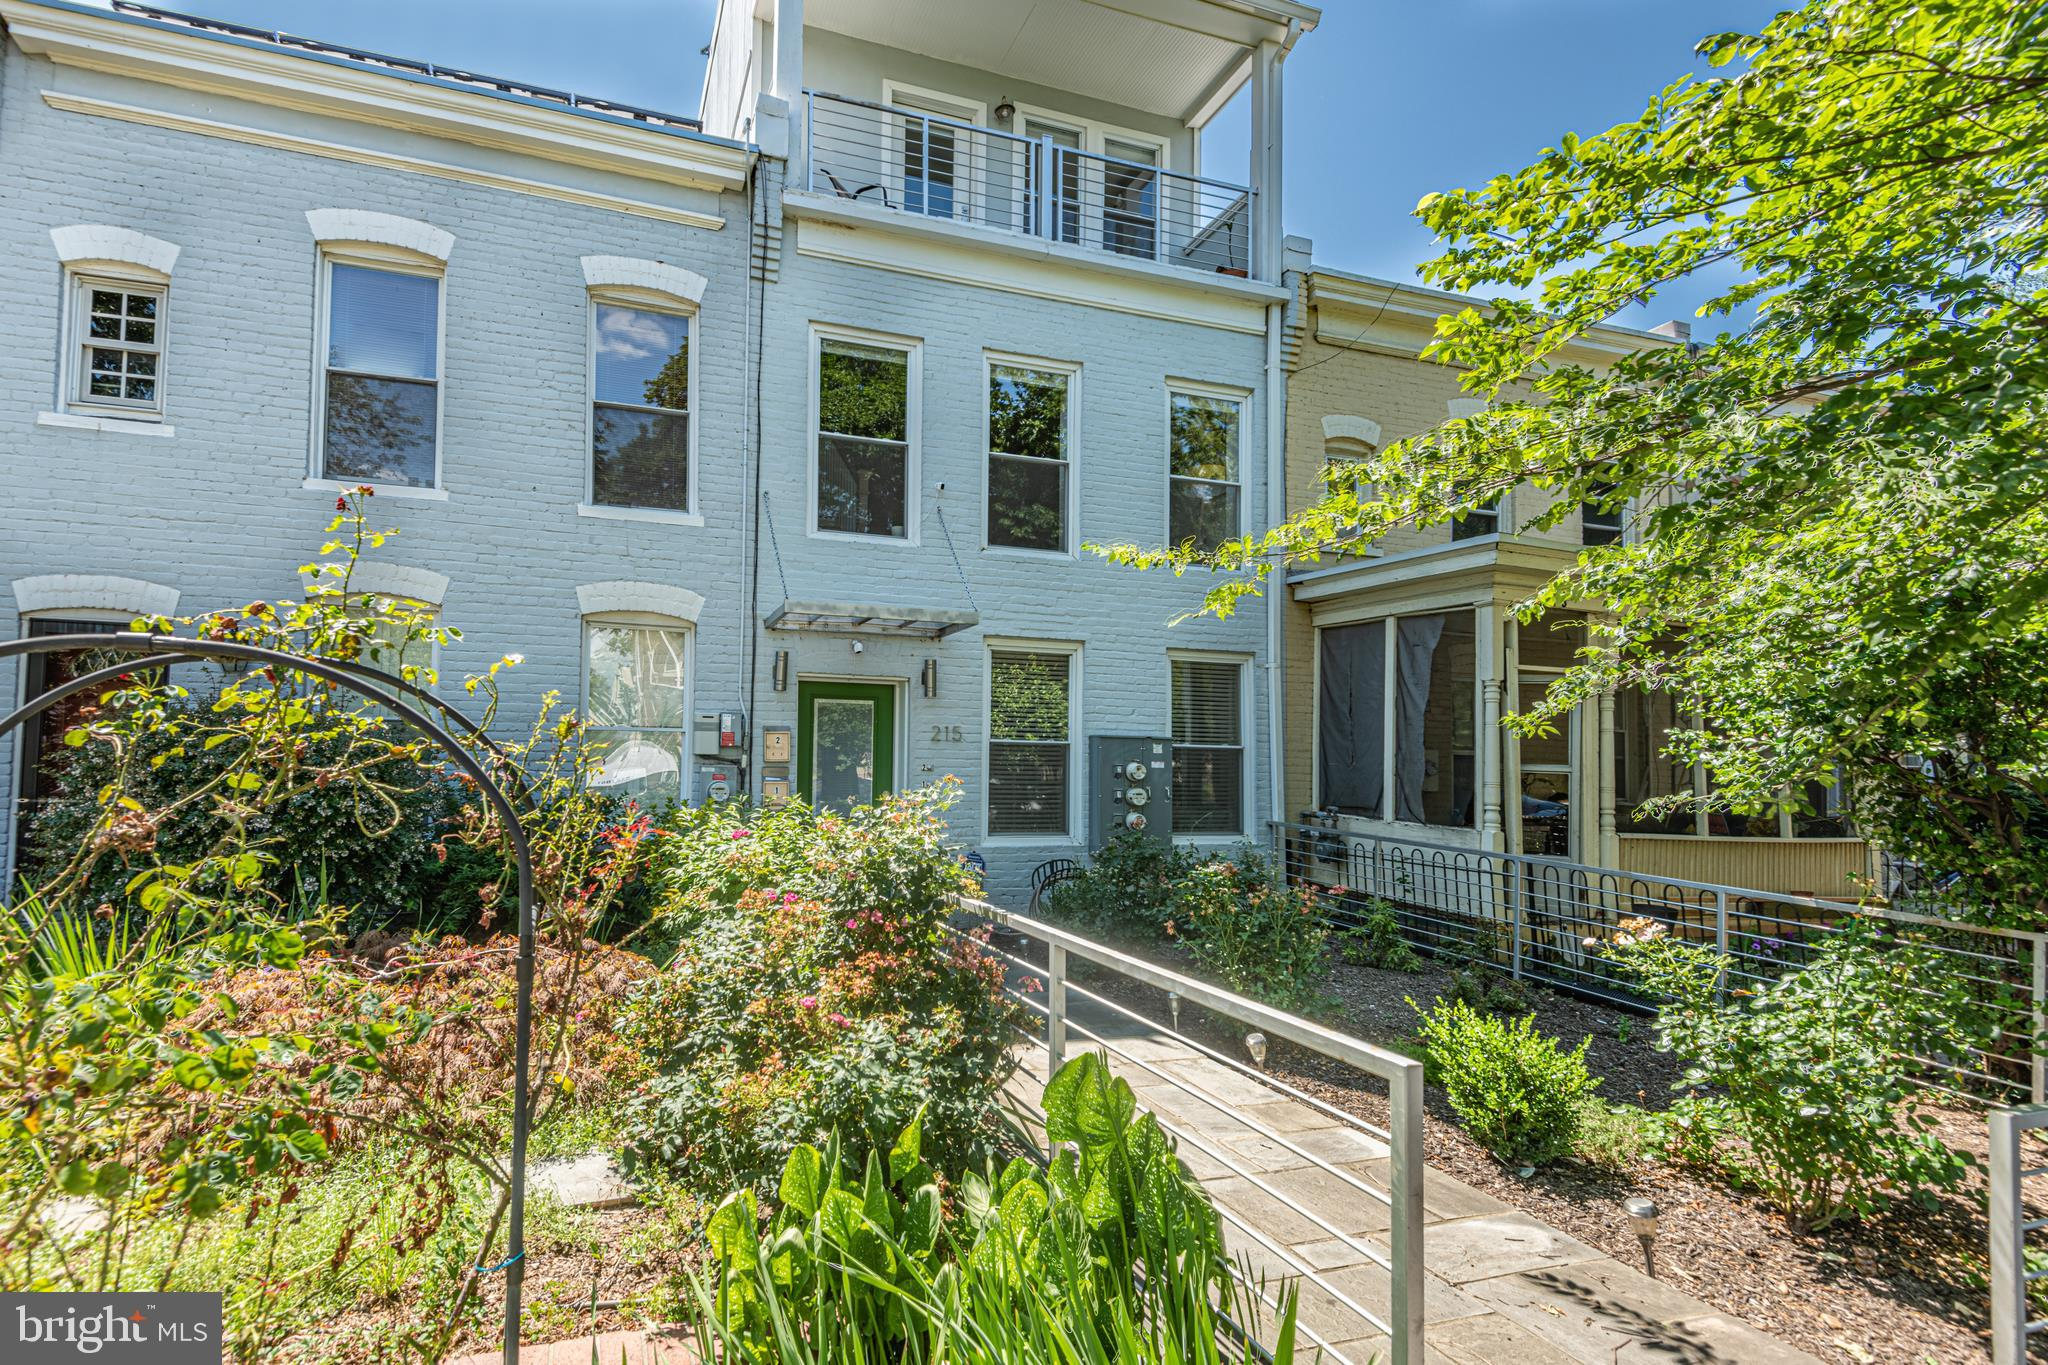 Wonderful 2-level condo in a great location so convenient to everything that Capitol Hill has to off